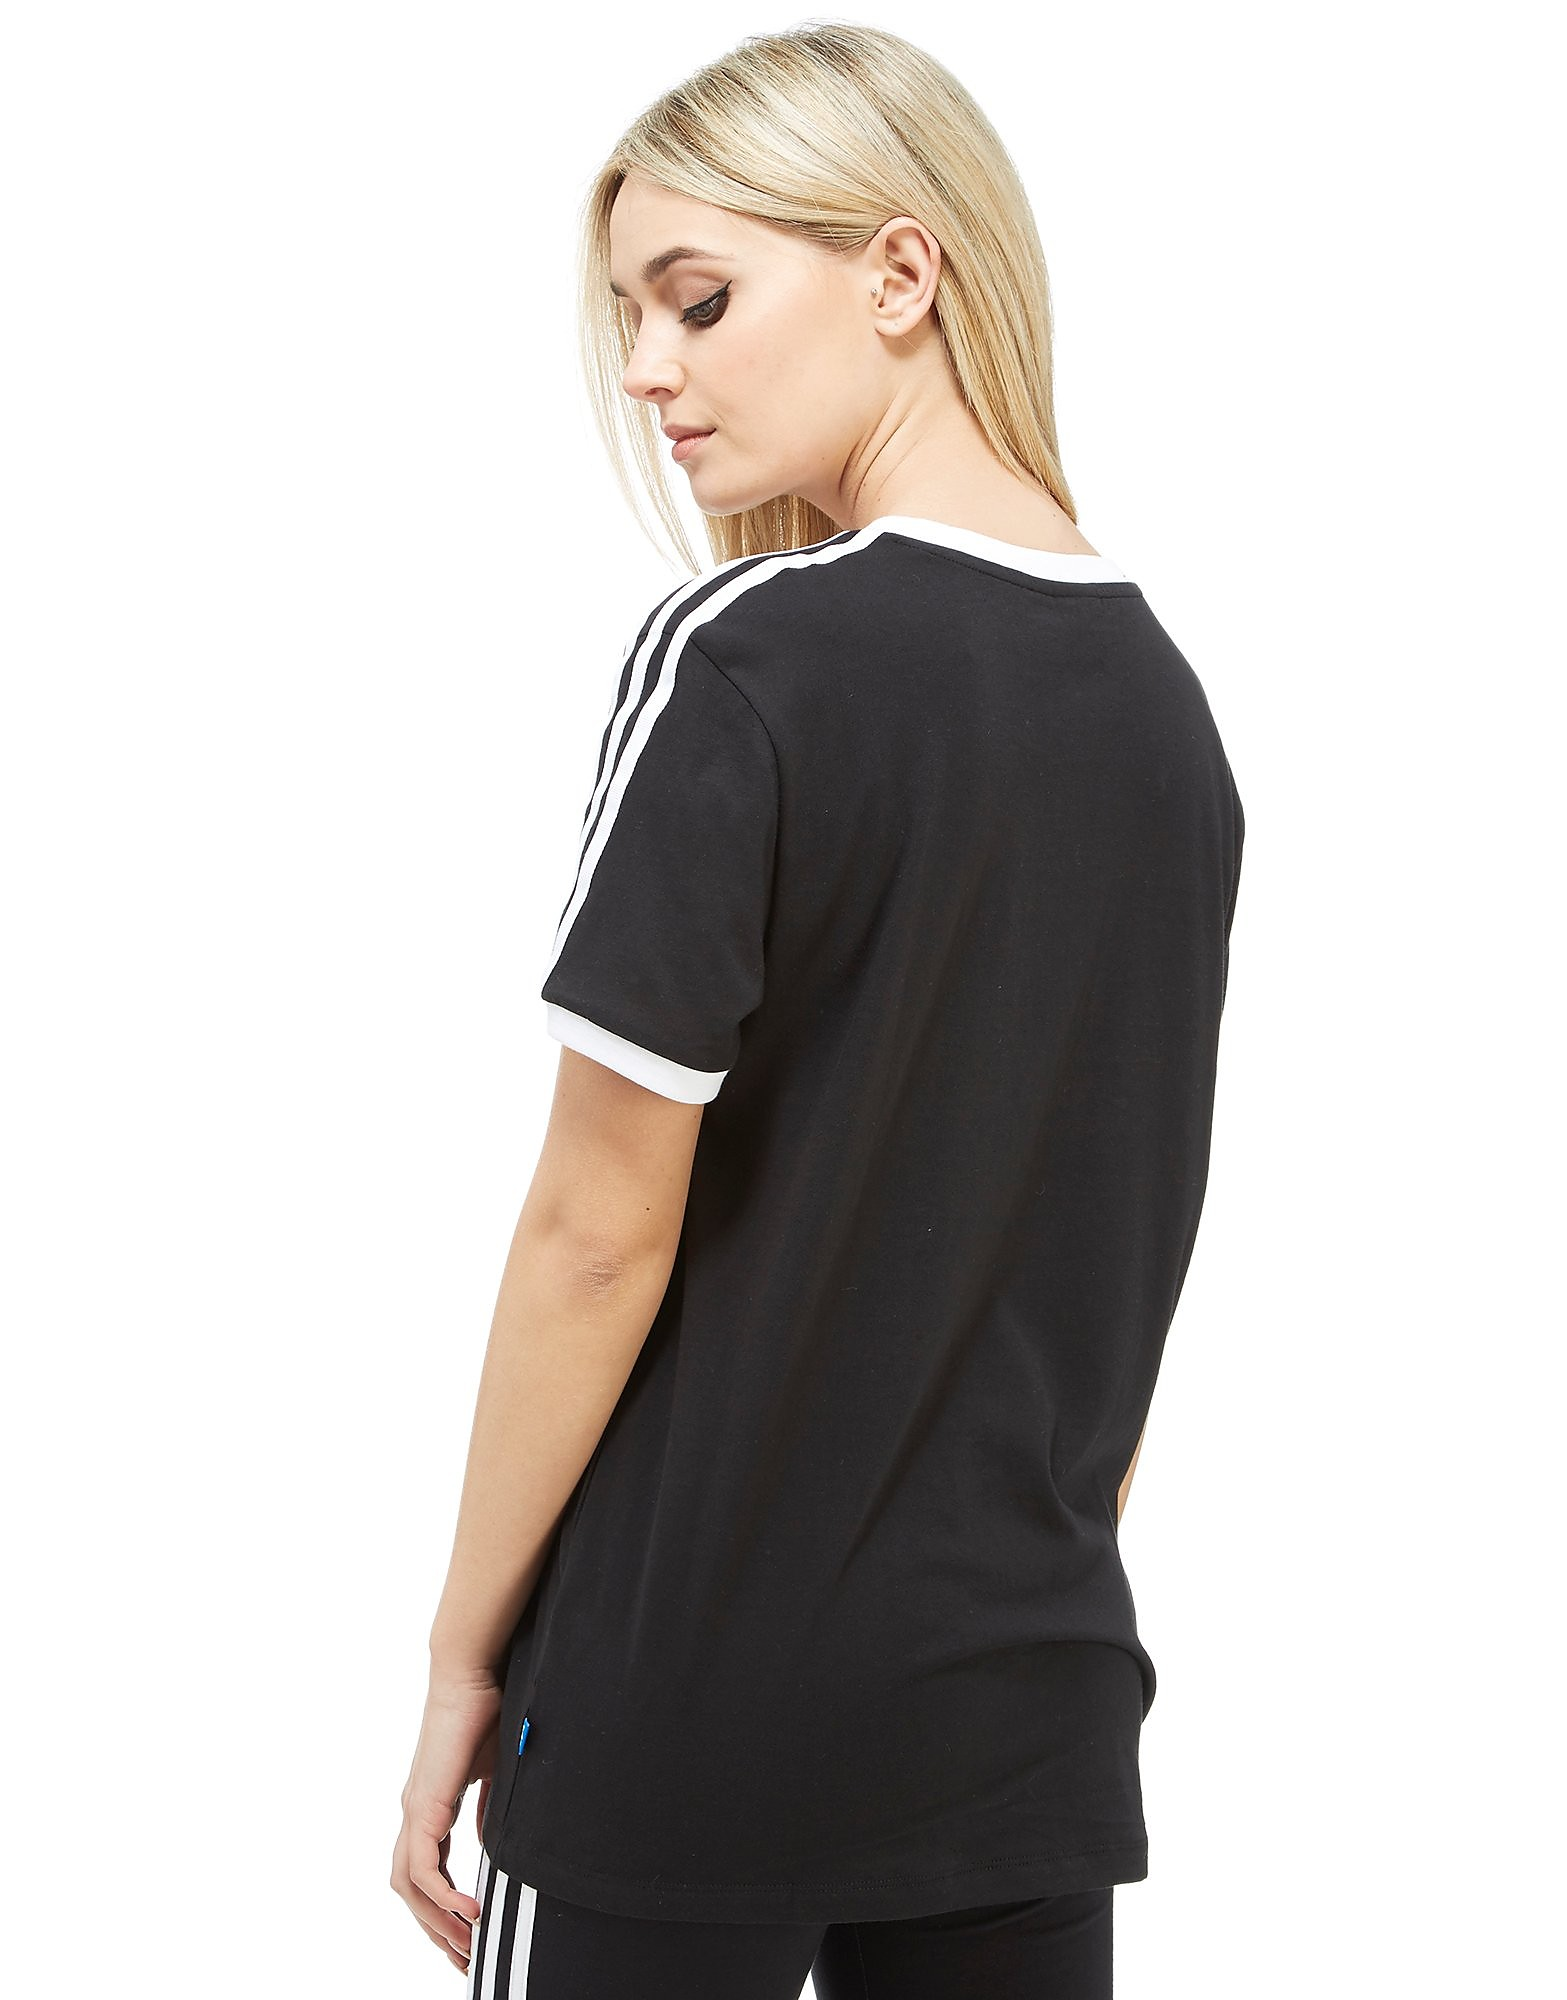 adidas Originals California t-shirt för damer